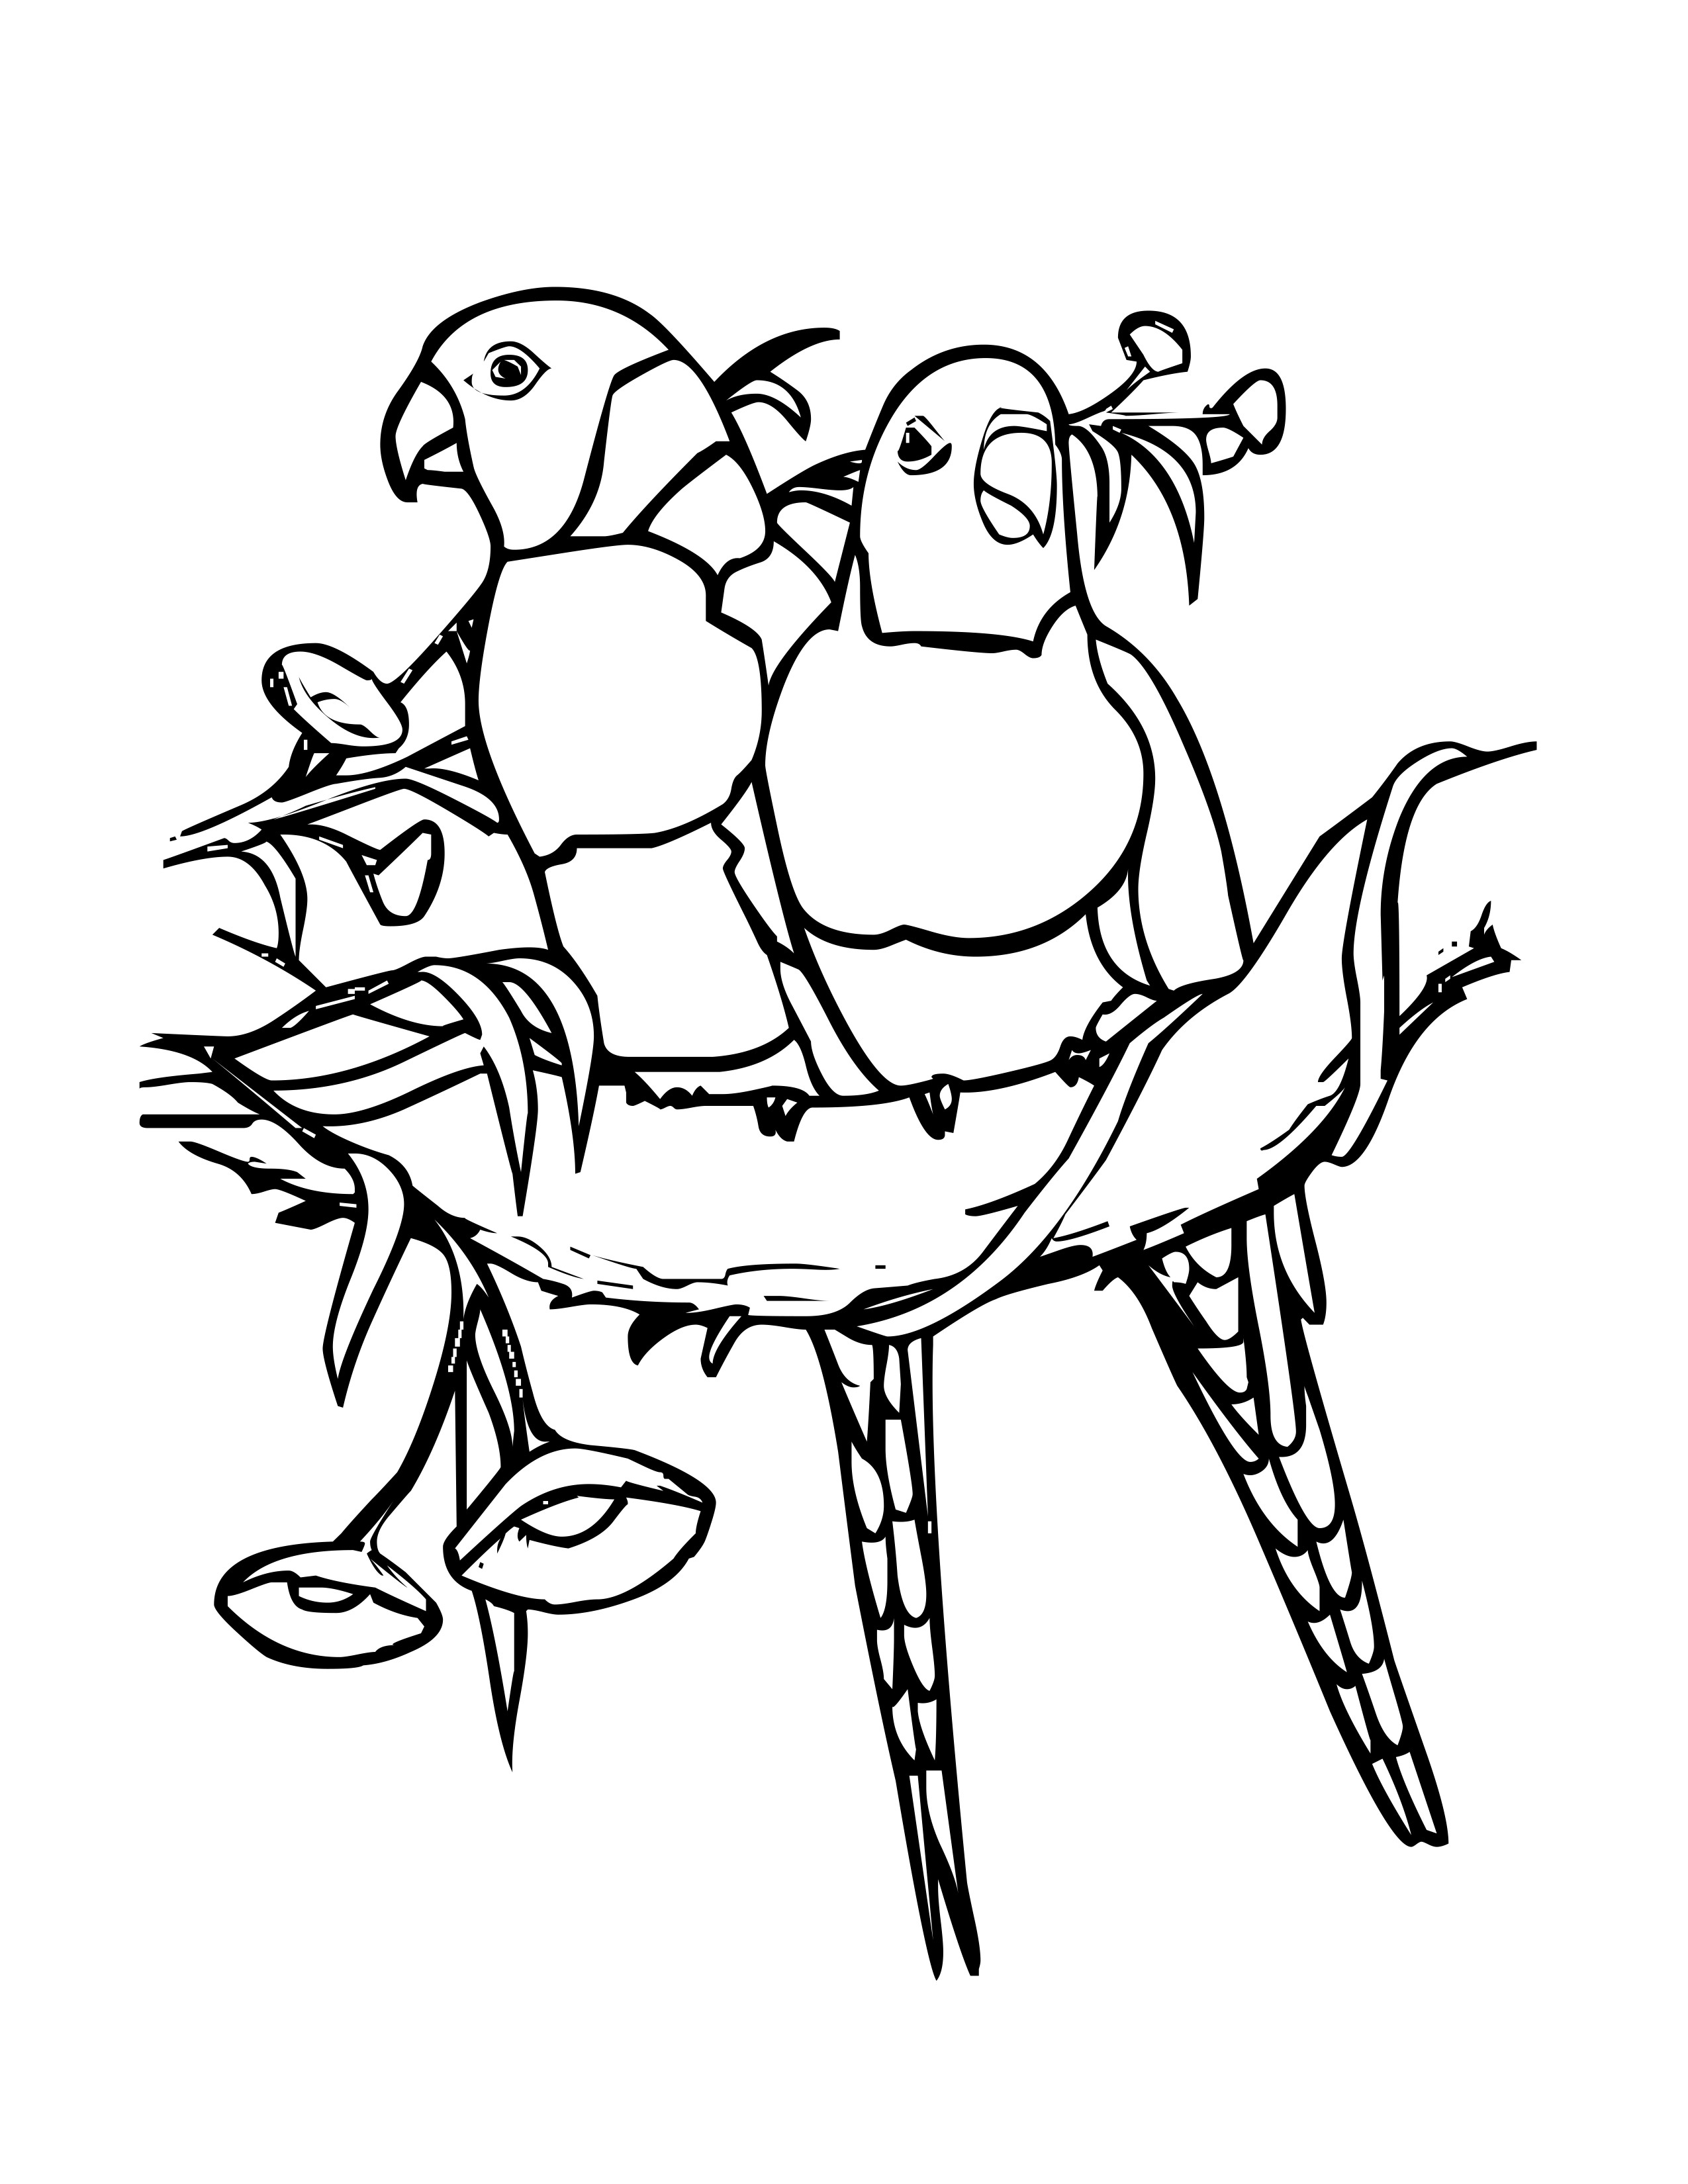 pictures of birds to color tweety bird coloring pages kidsuki color to of birds pictures